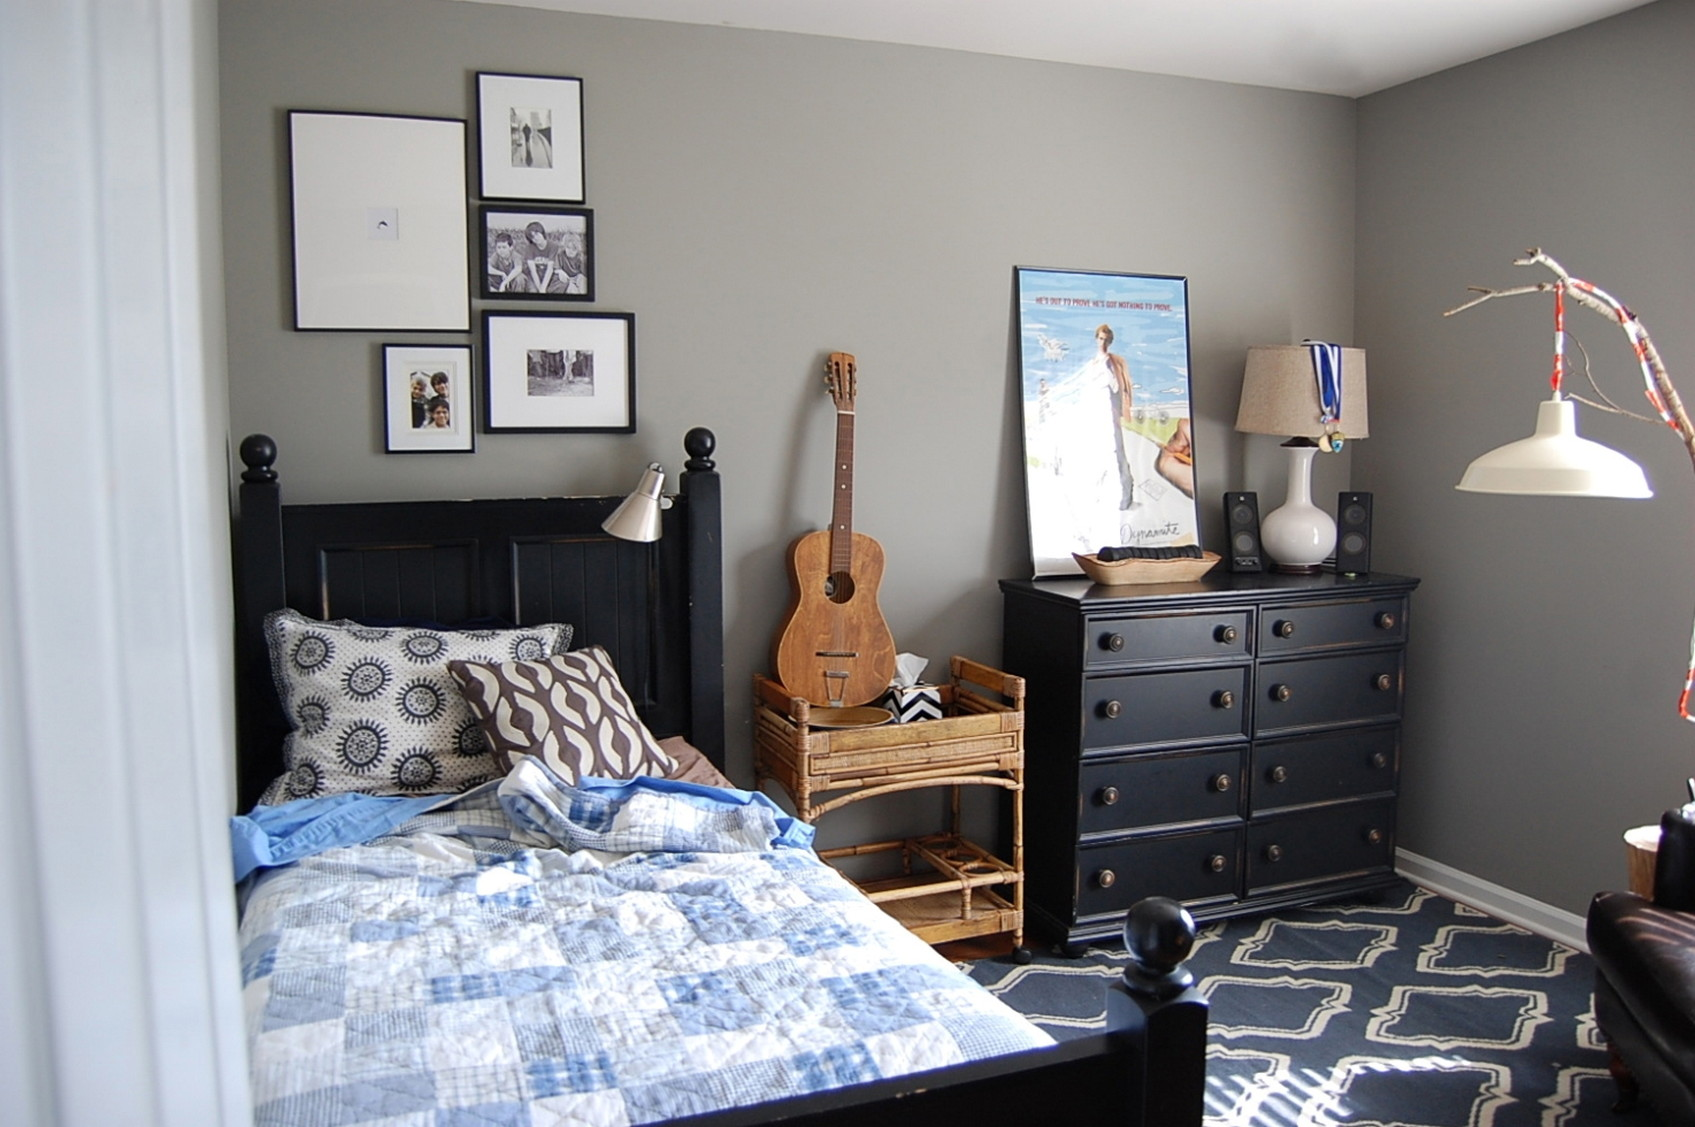 Small Bedroom Ideas For Teen Boys With Gray Walls And ... on Teenage Small Bedroom Ideas  id=66965